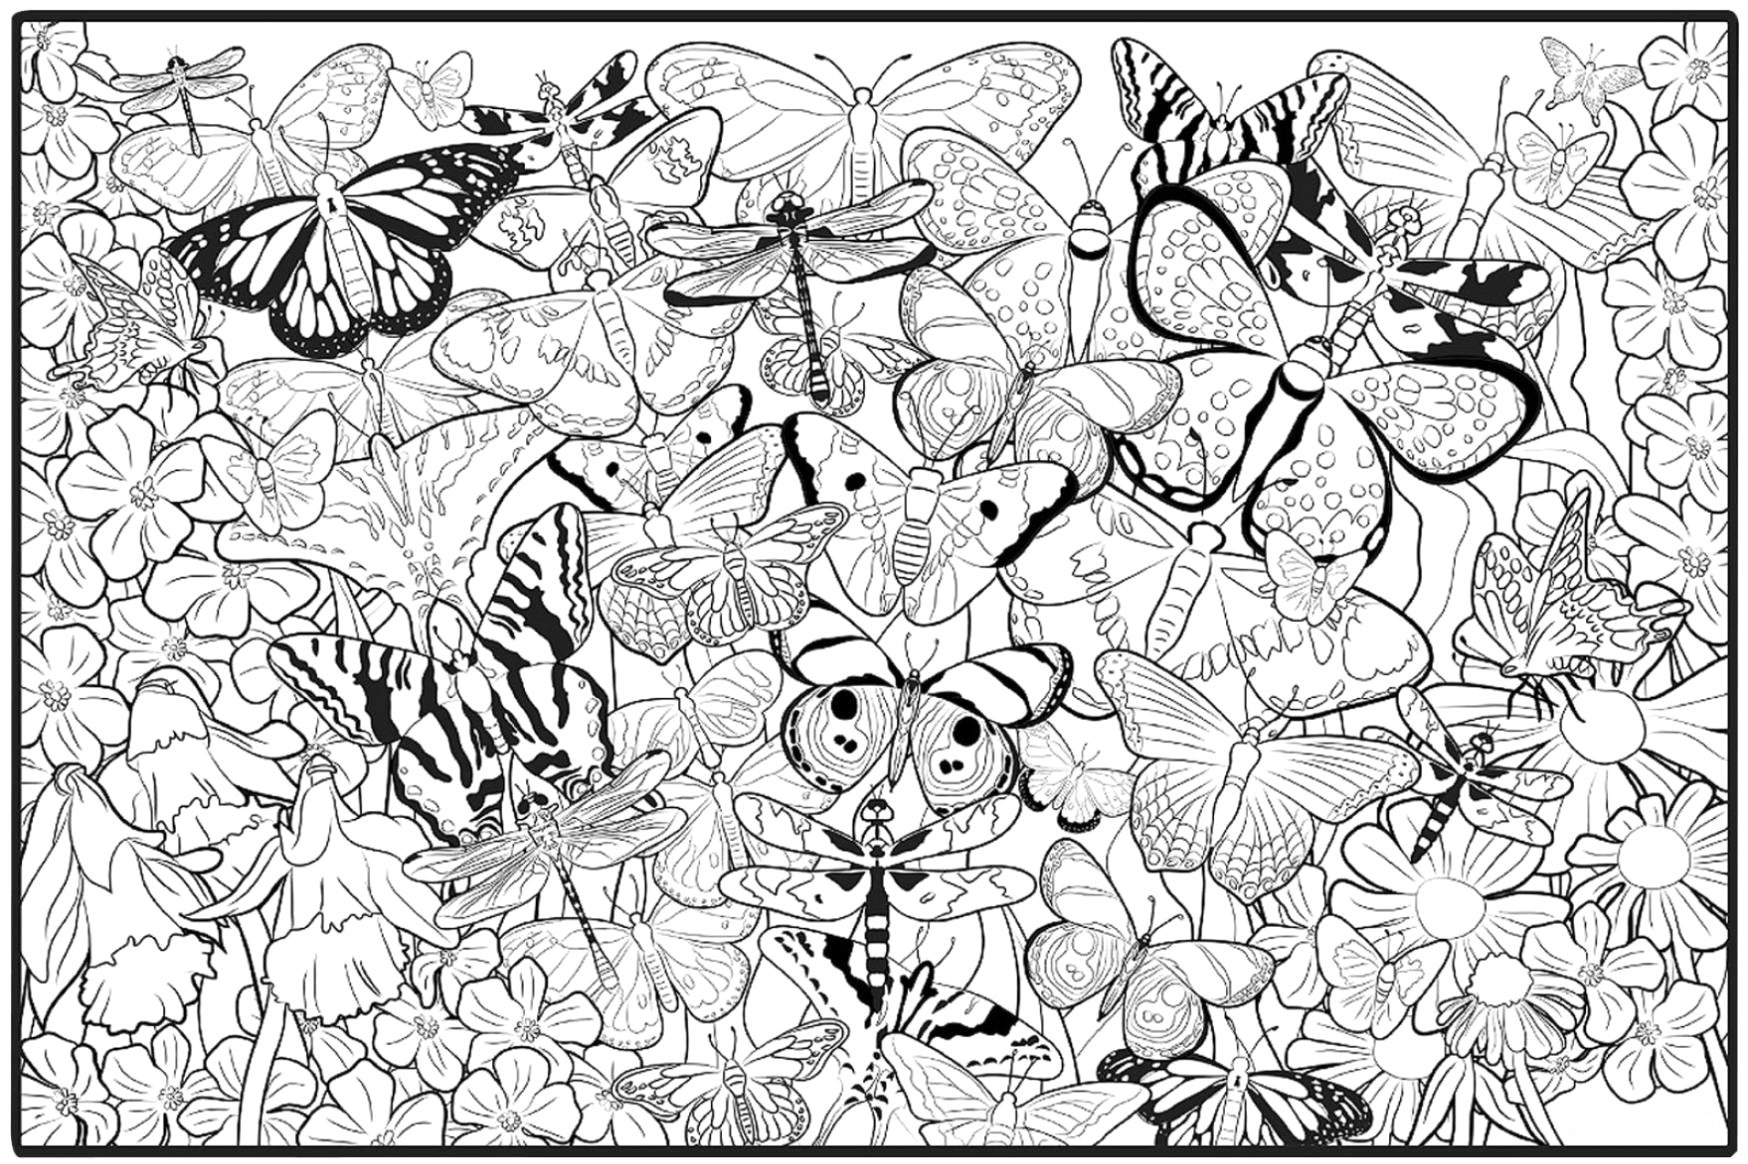 hard coloring pages for adults hard coloring pages for adults best coloring pages for kids pages coloring hard adults for